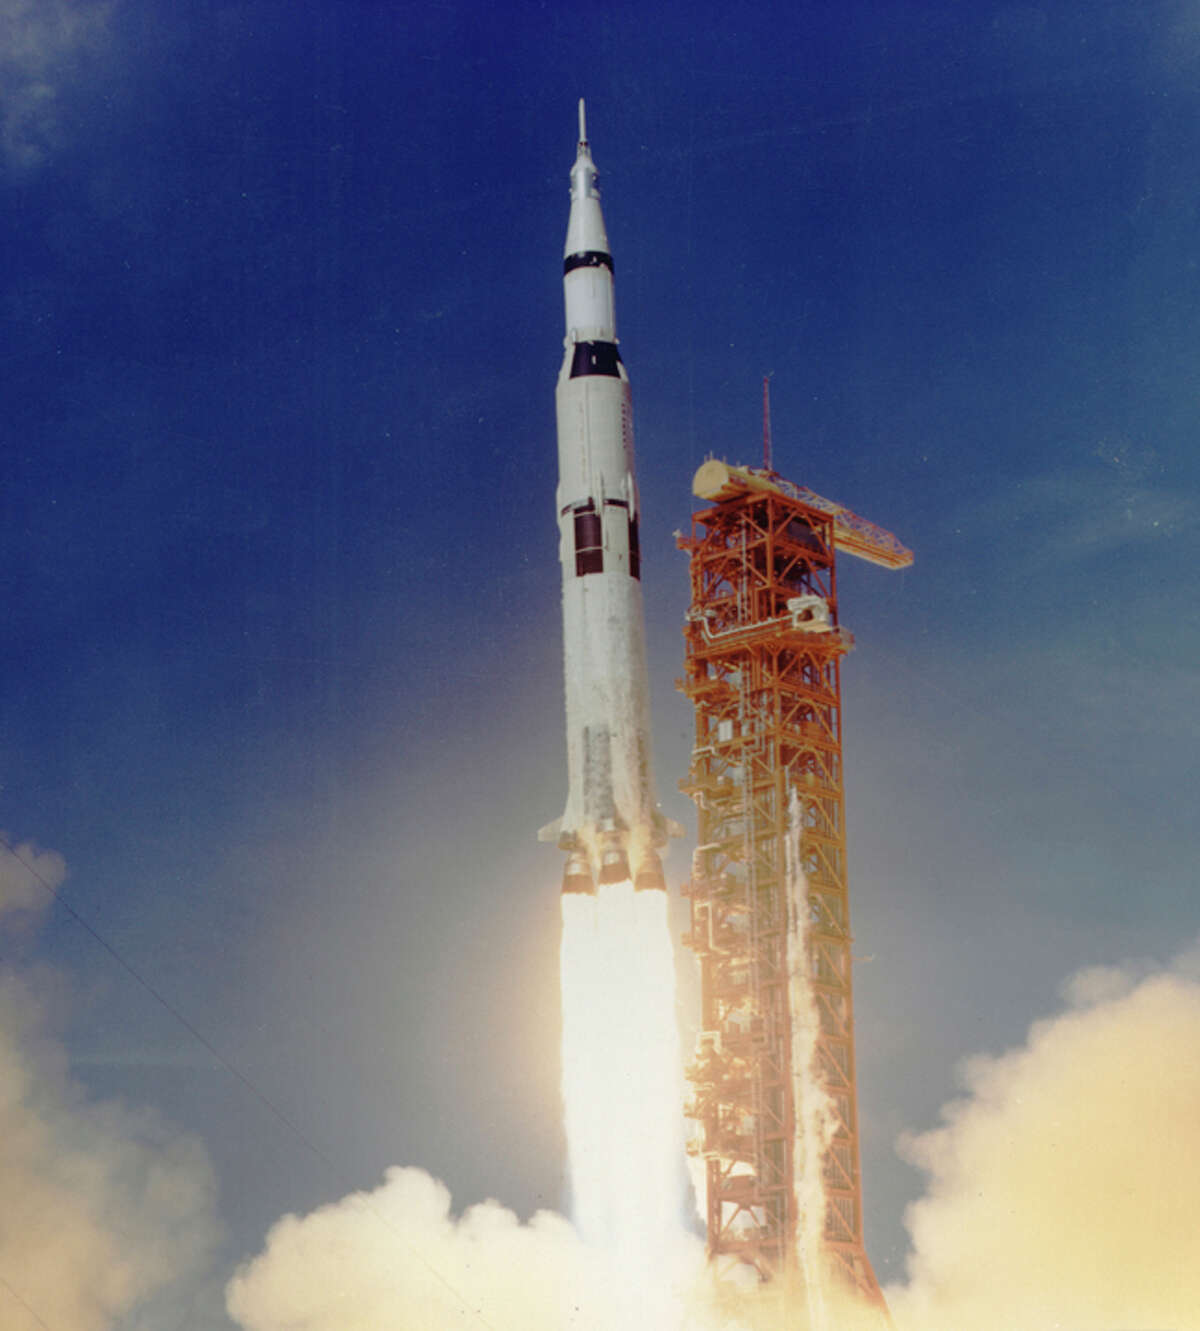 Apollo 11 Liftoff of Apollo 11, from Florida's Kennedy Space Center on July 16, 1969.